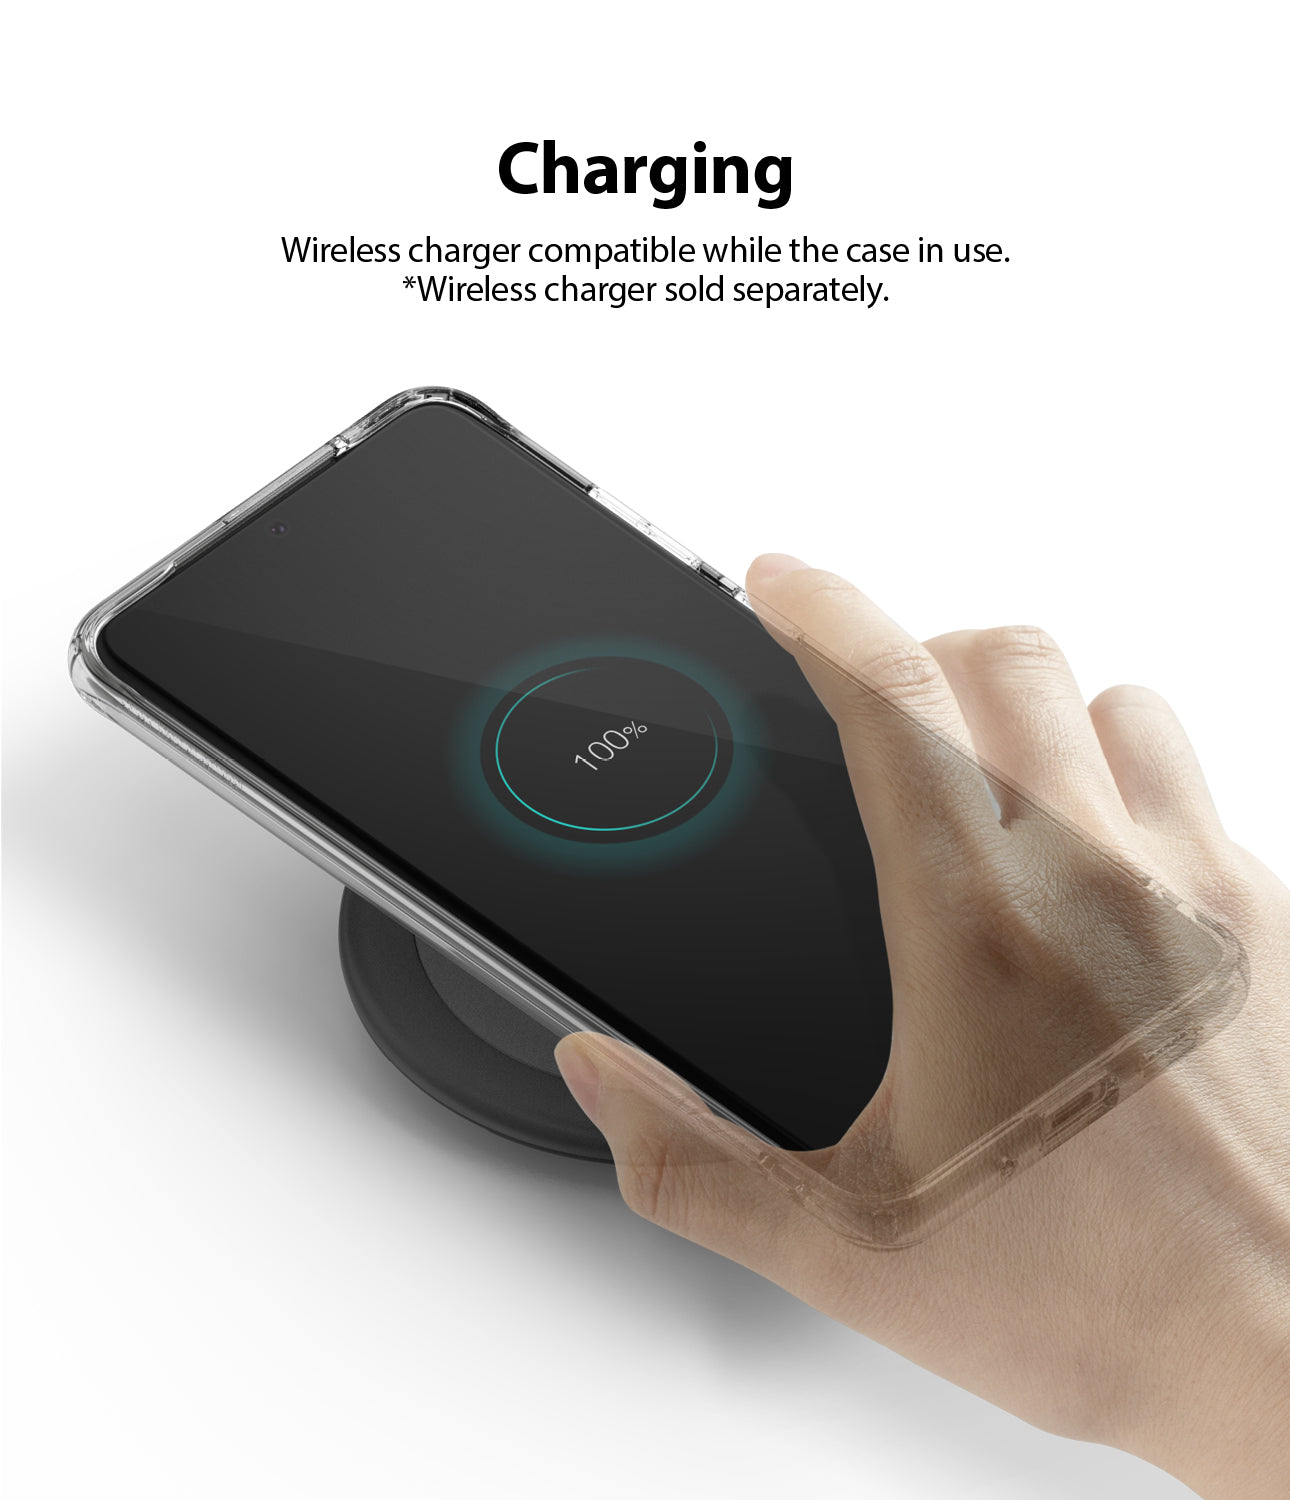 wireless charging / powershare compatible with the case on